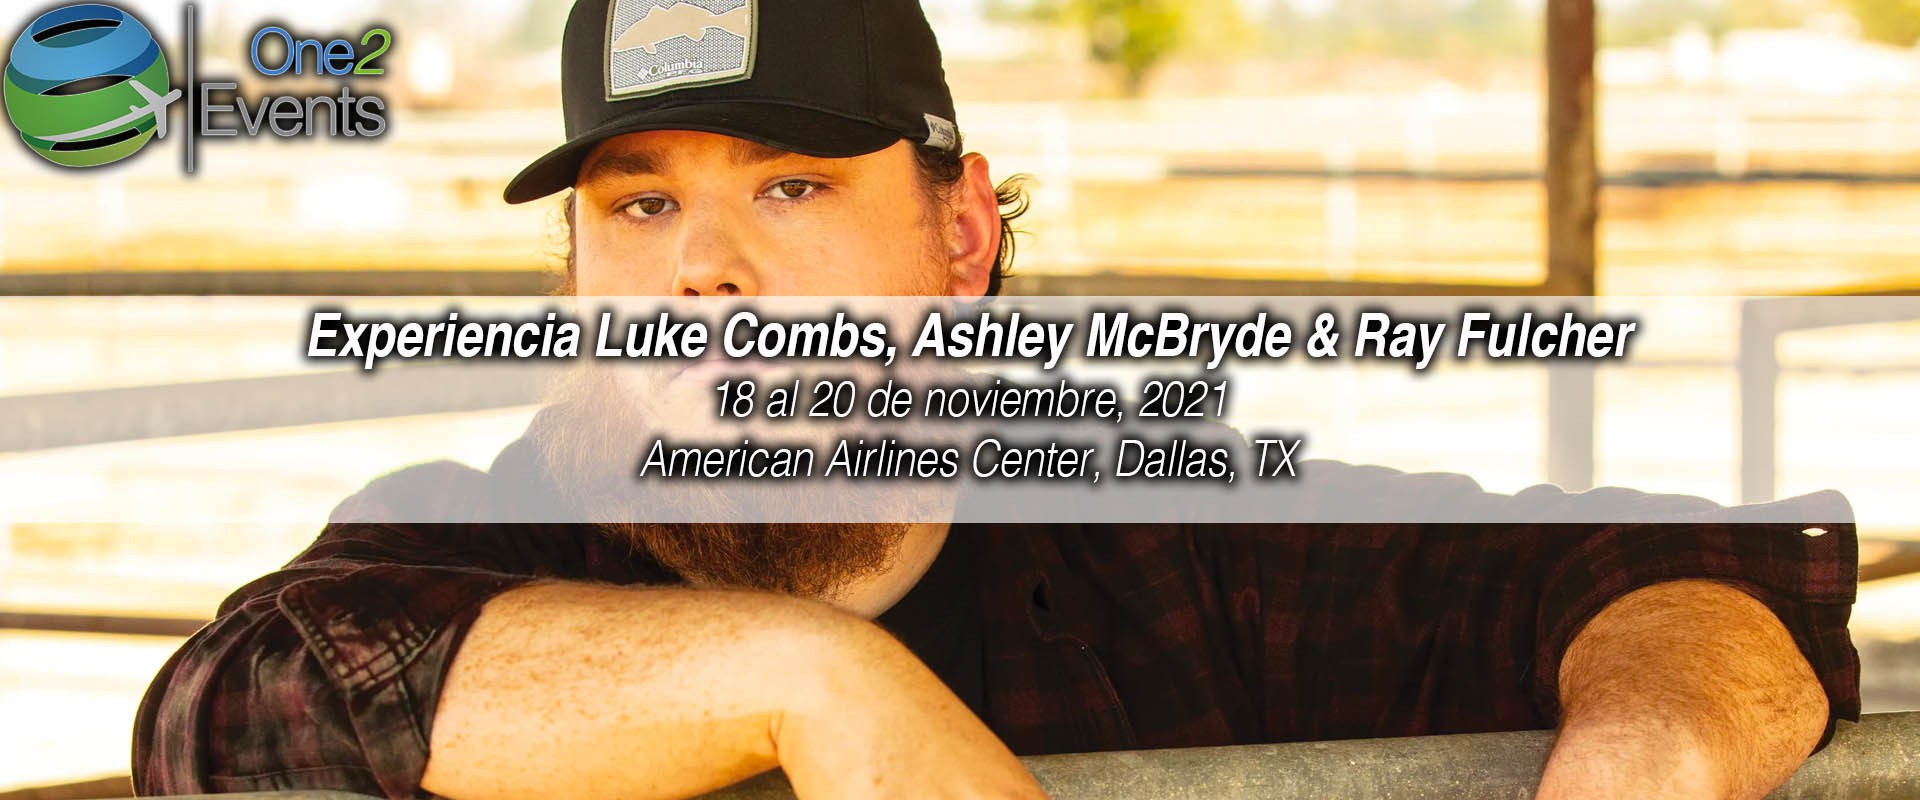 Concierto Luke Combs en American Airlines Center, Dallas